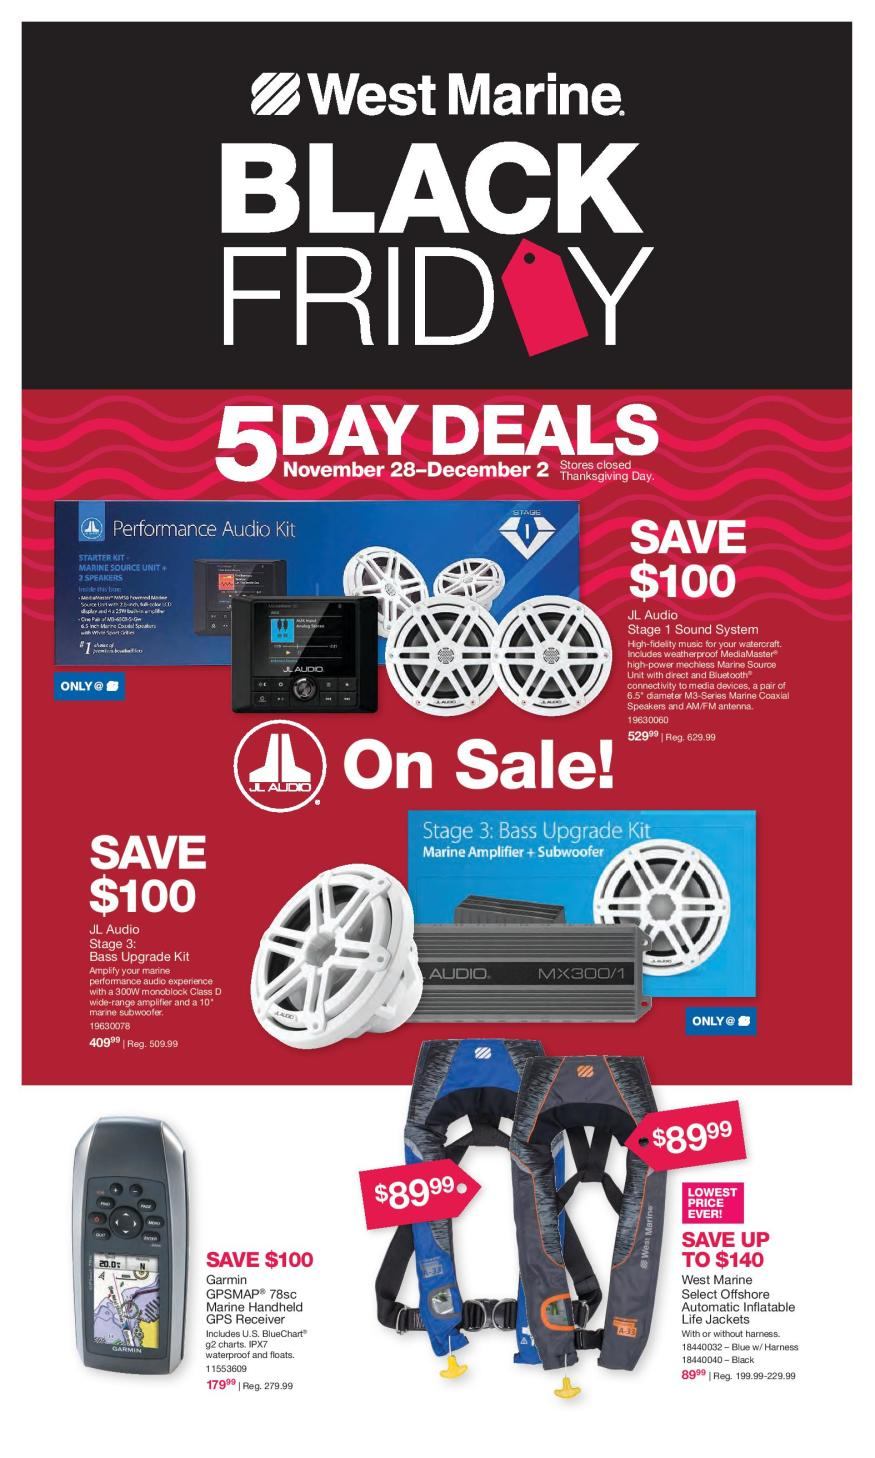 West Marine Black Friday 2019